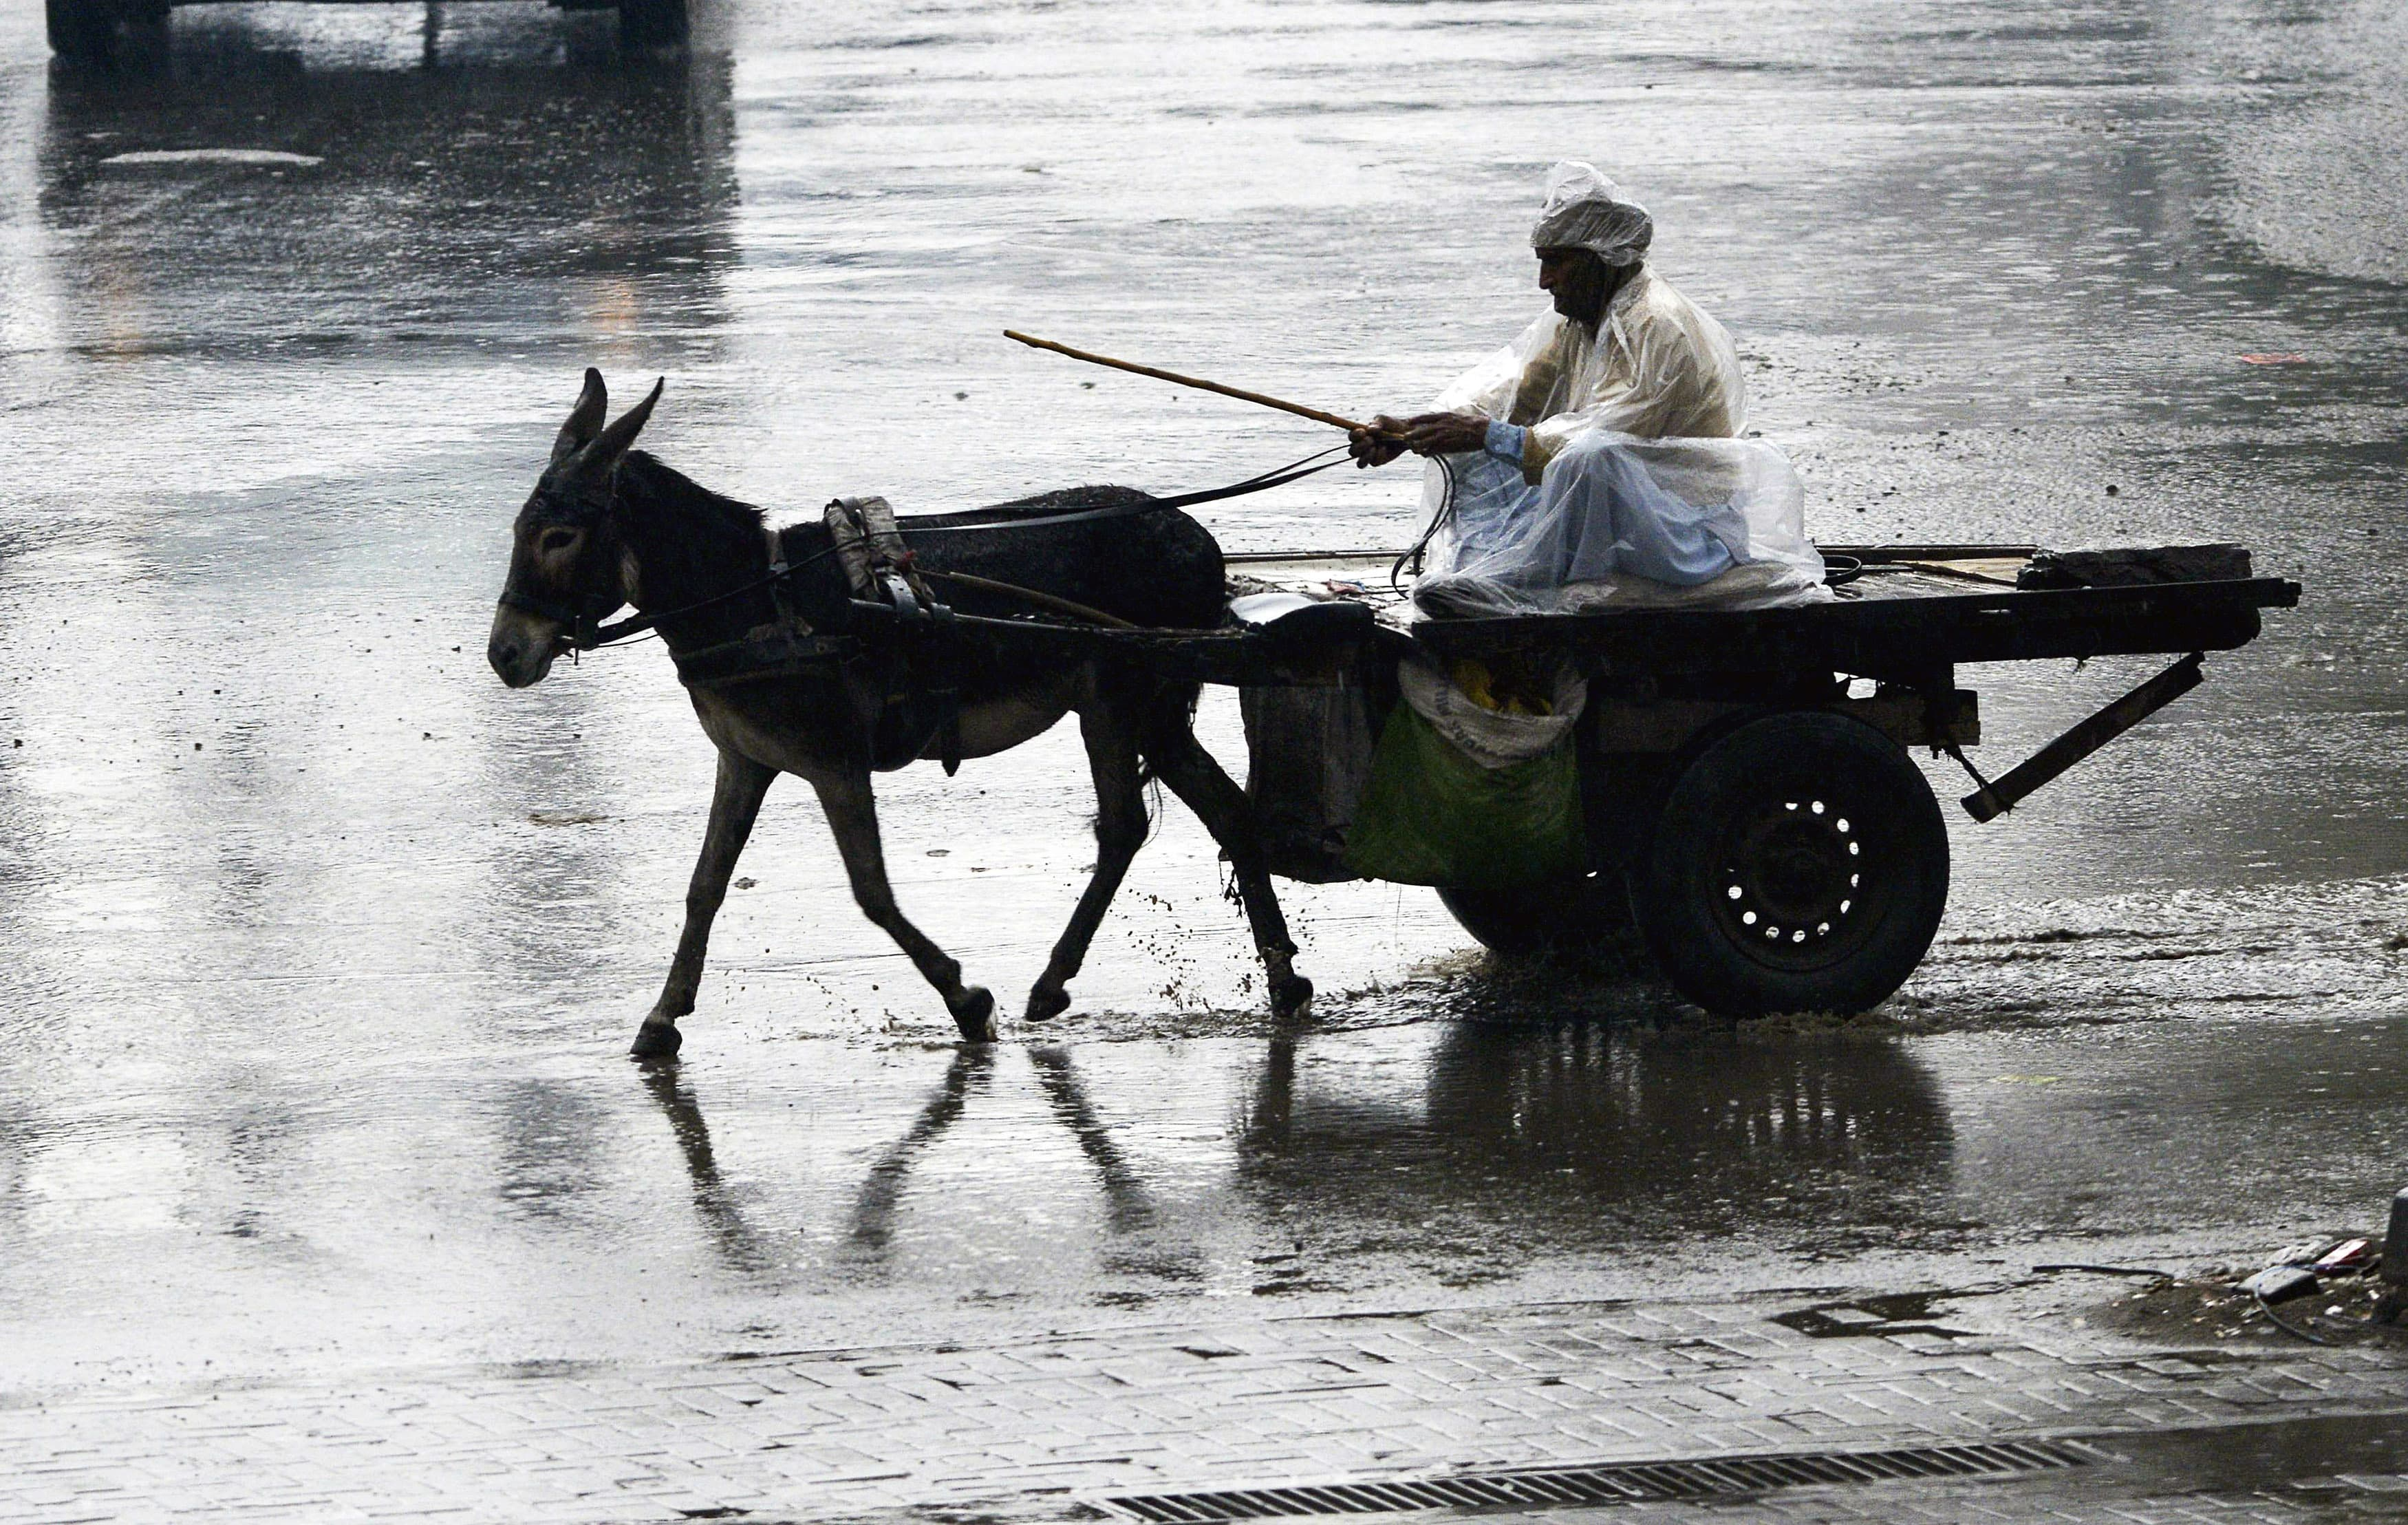 A Pakistani man rides on his donkey cart across a flooded street during heavy rain in Lahore on January 21, 2019. (Photo by ARIF ALI / AFP) — AFP or licensors